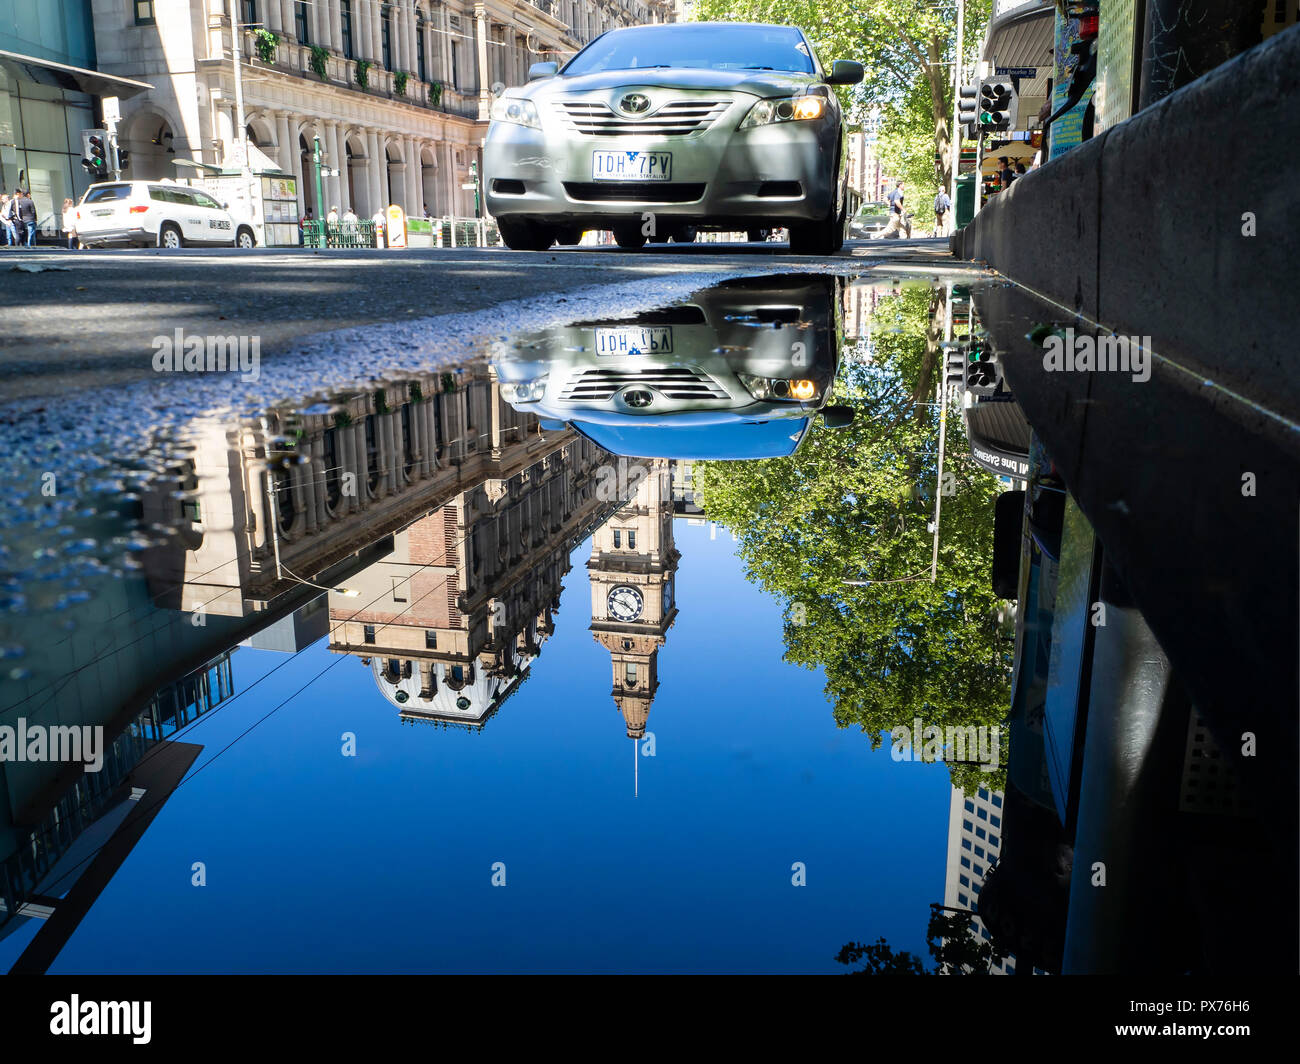 A moment in time caught as reflections of city buildings and multiple people going about their life are seen in a distorted view in a puddle - Stock Image